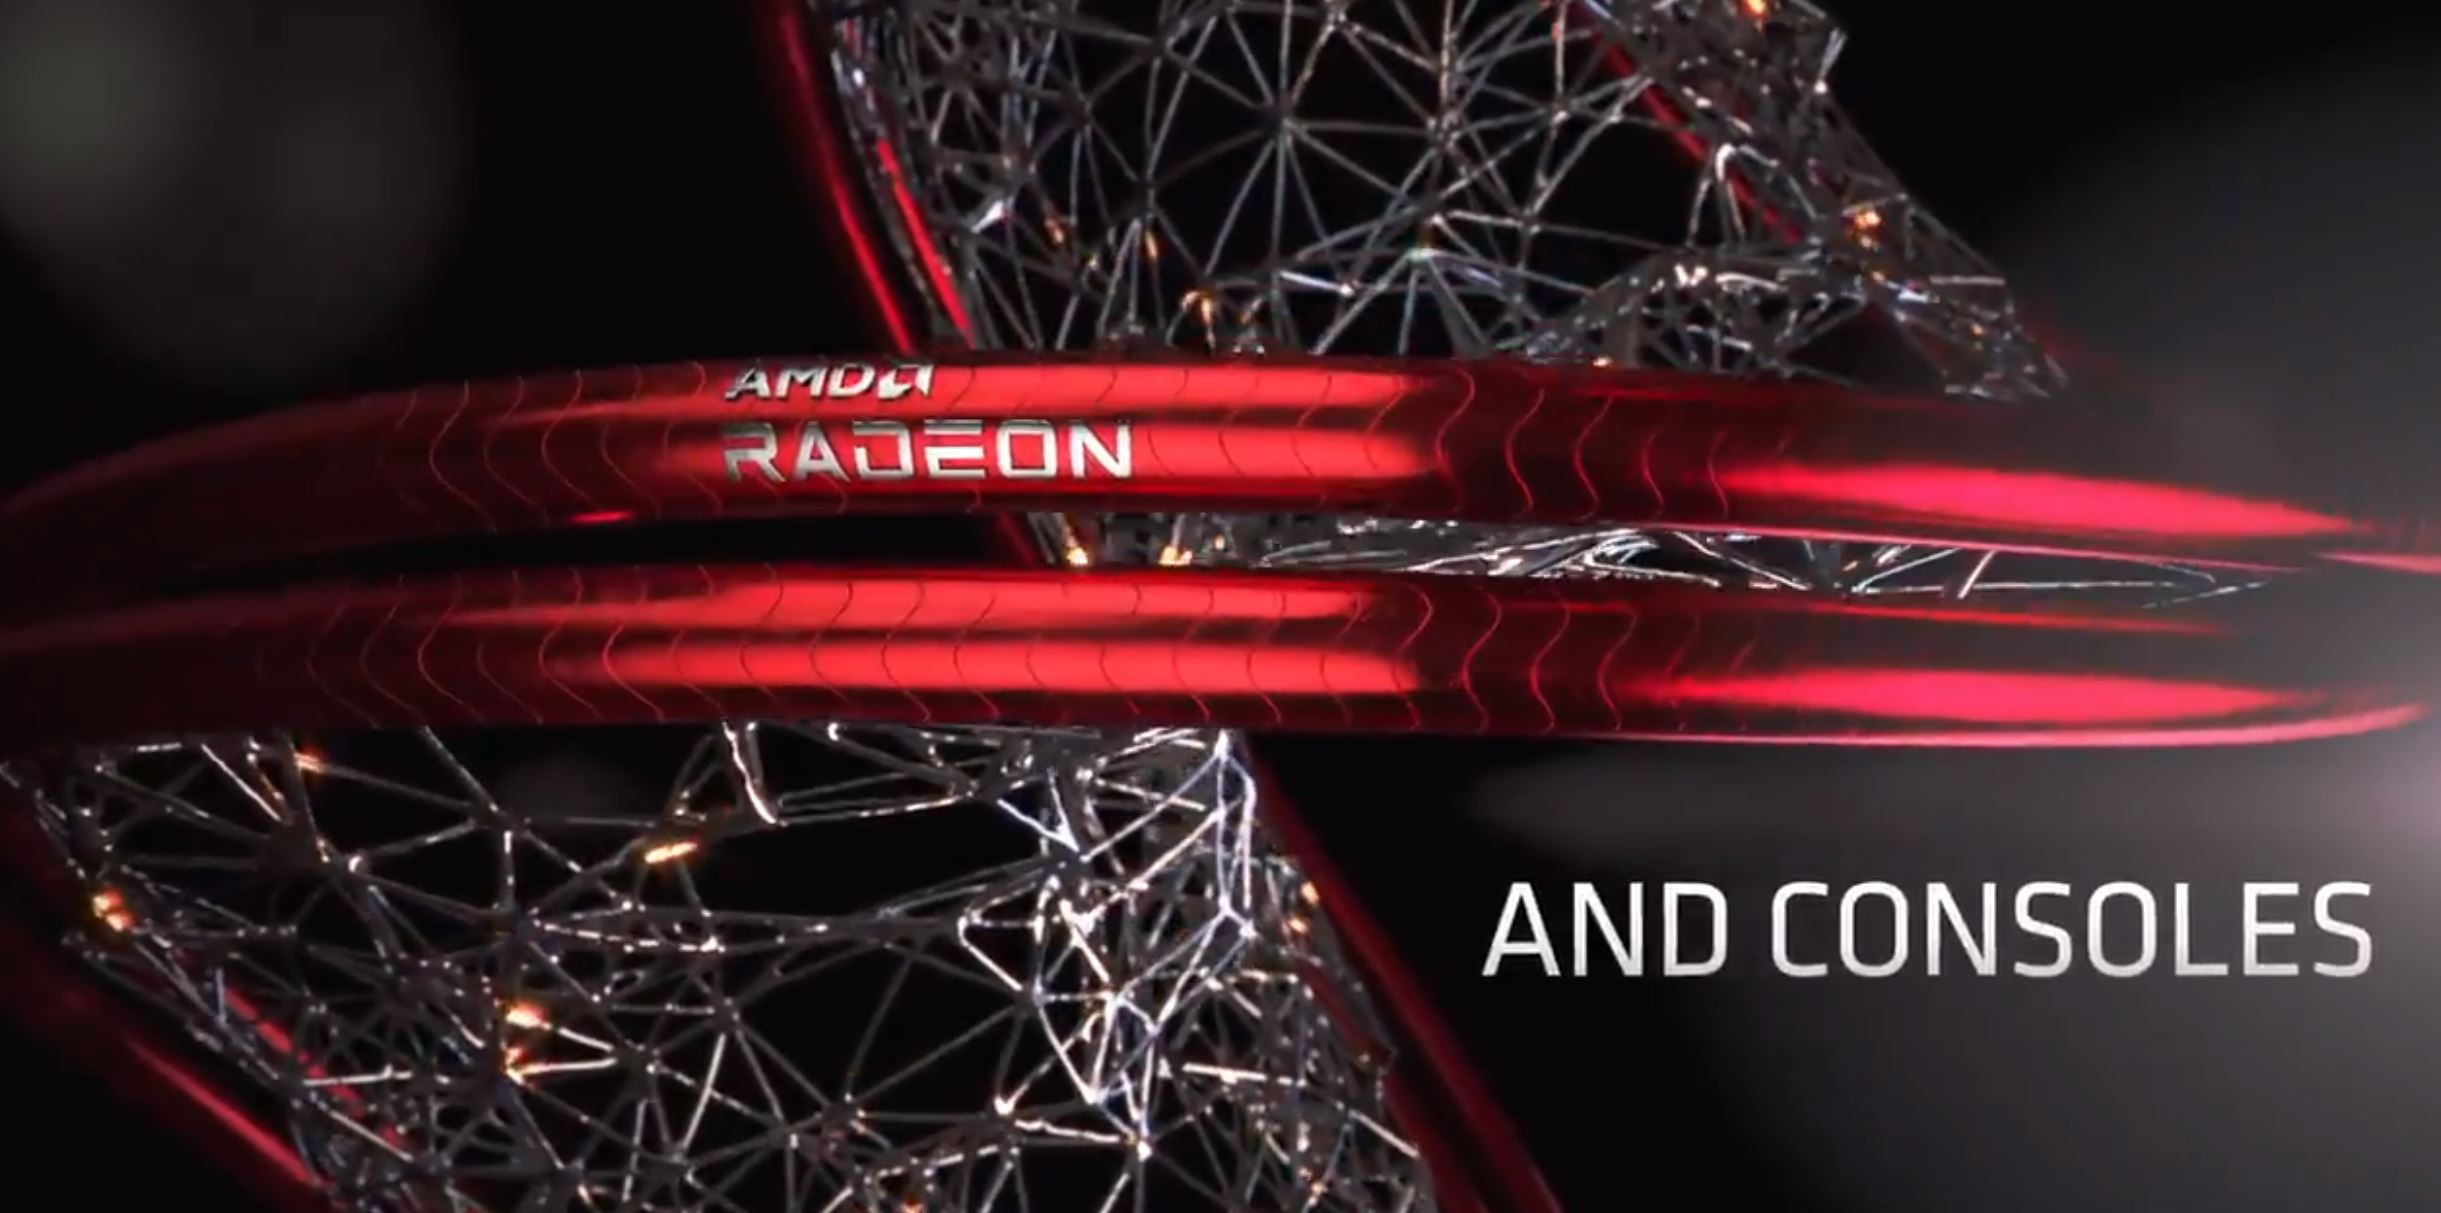 Amd To Introduce Zen3 On October 8 Radeon Rx 6000 Series On October 28 Videocardz Com